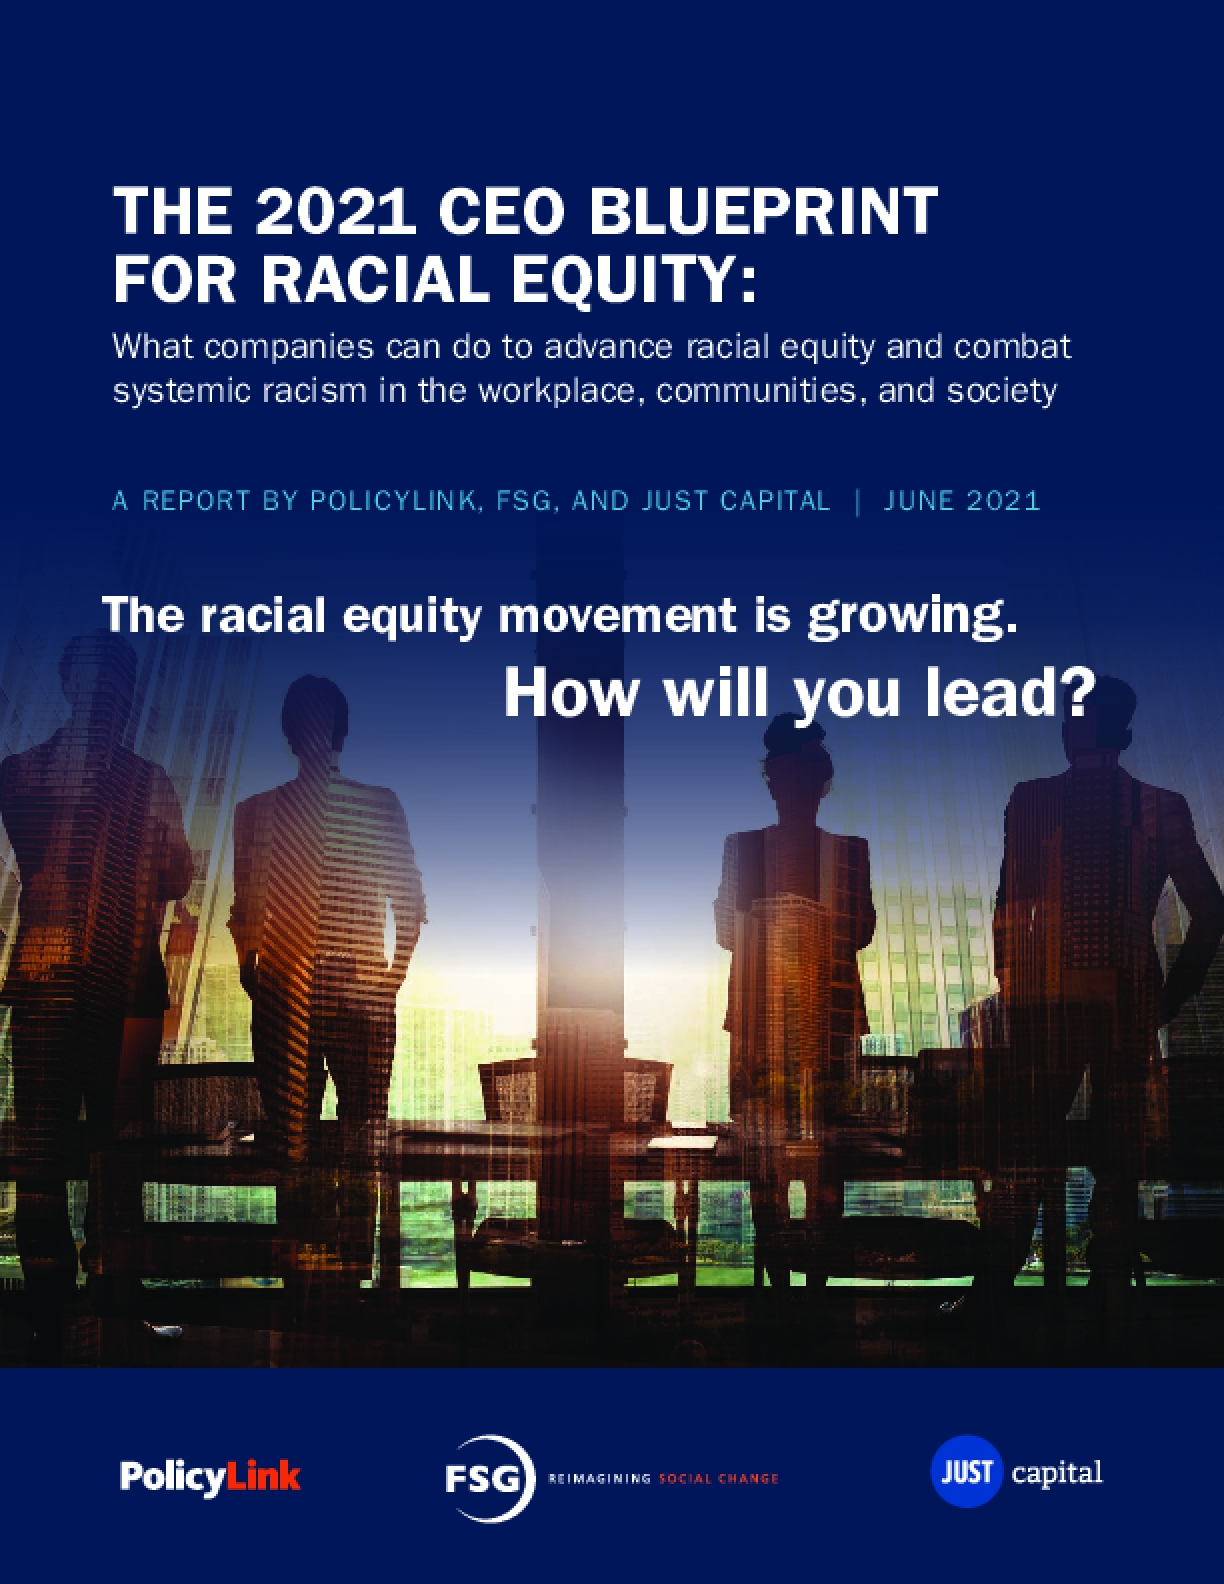 The 2021 CEO Blueprint for Racial Equity: What companies can do to advance racial equity and combat systemic racism in the workplace, communities, and society